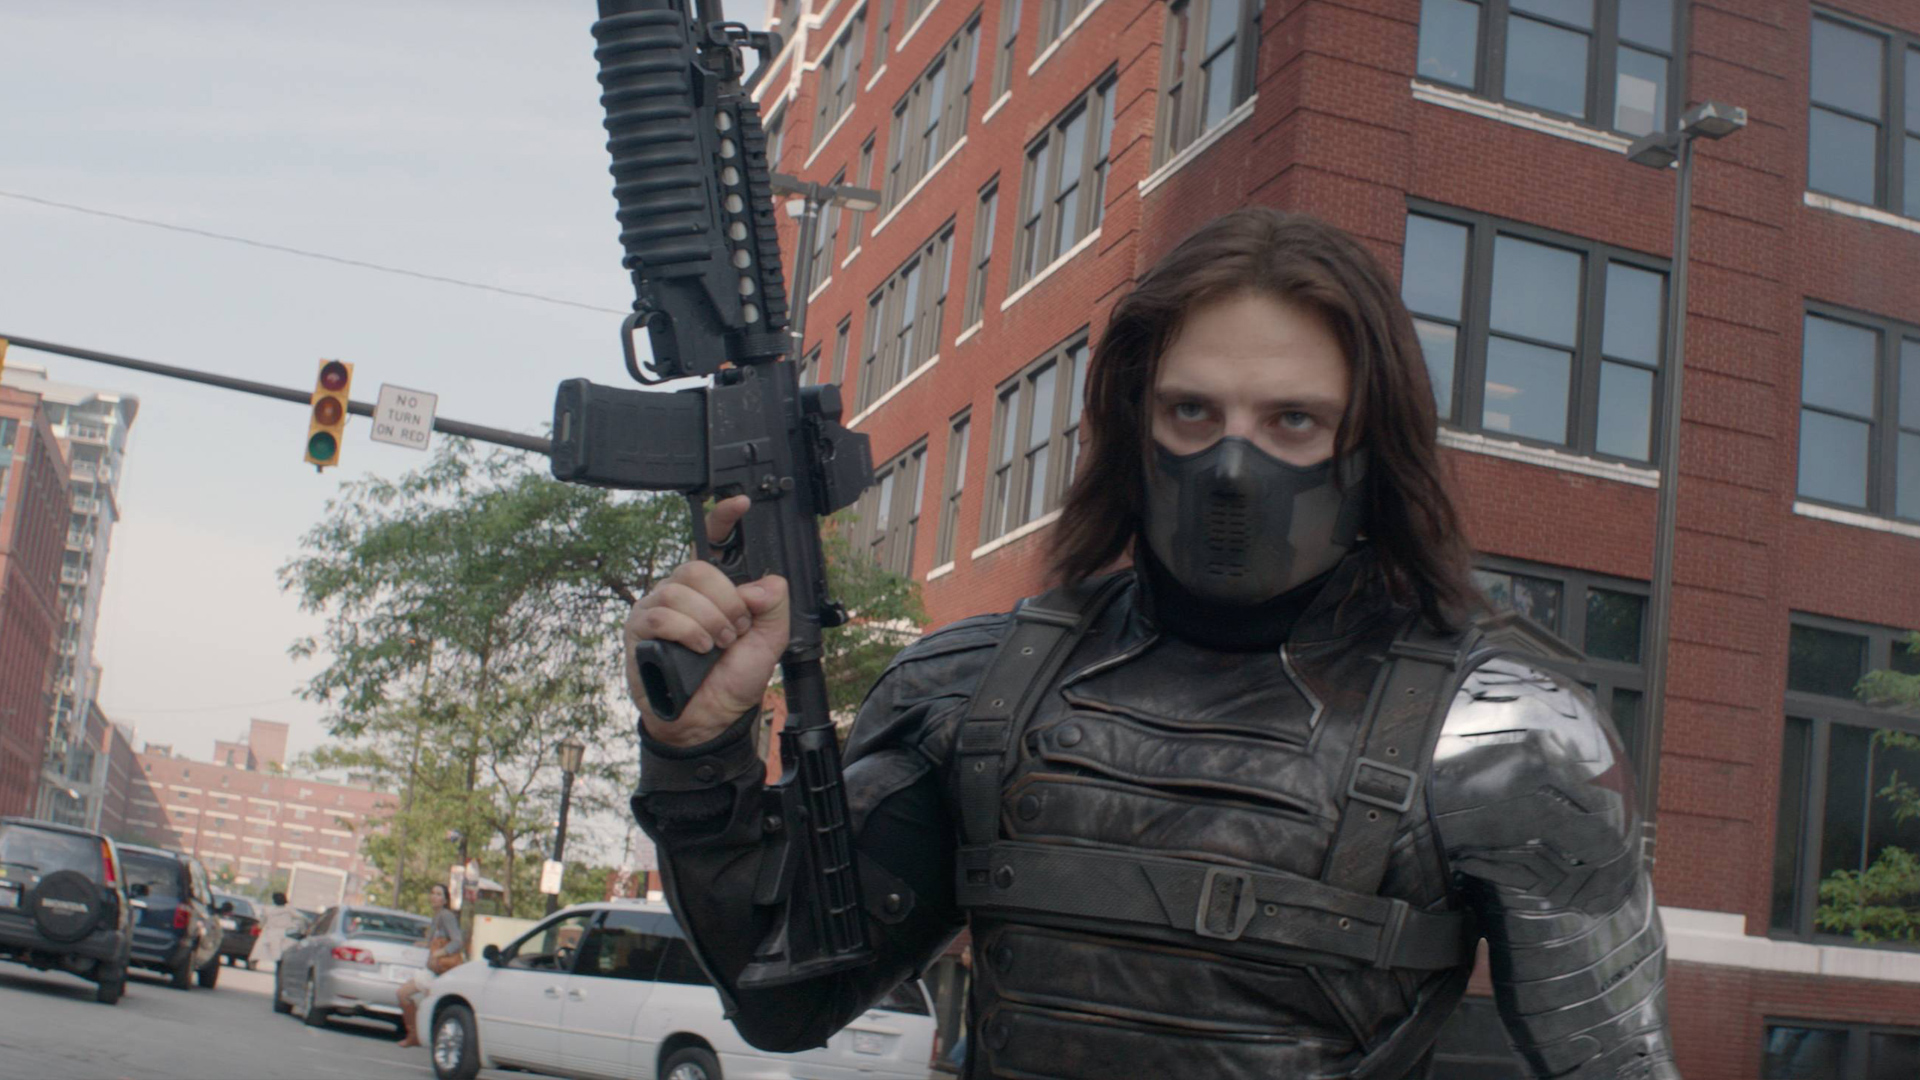 captain america the winter soldier full movie download mp4 in english